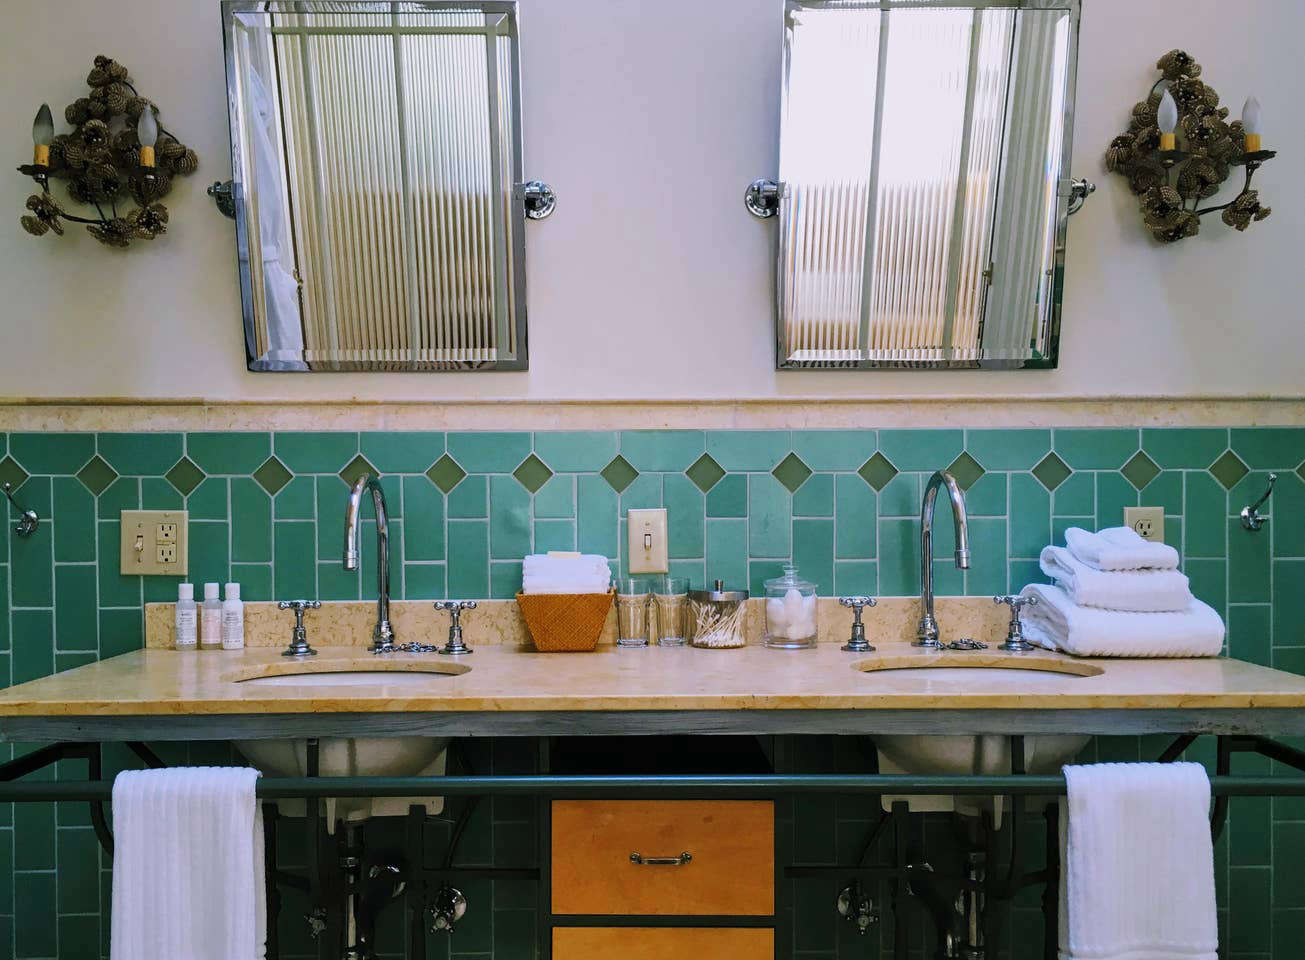 A green-tiled bathroom.